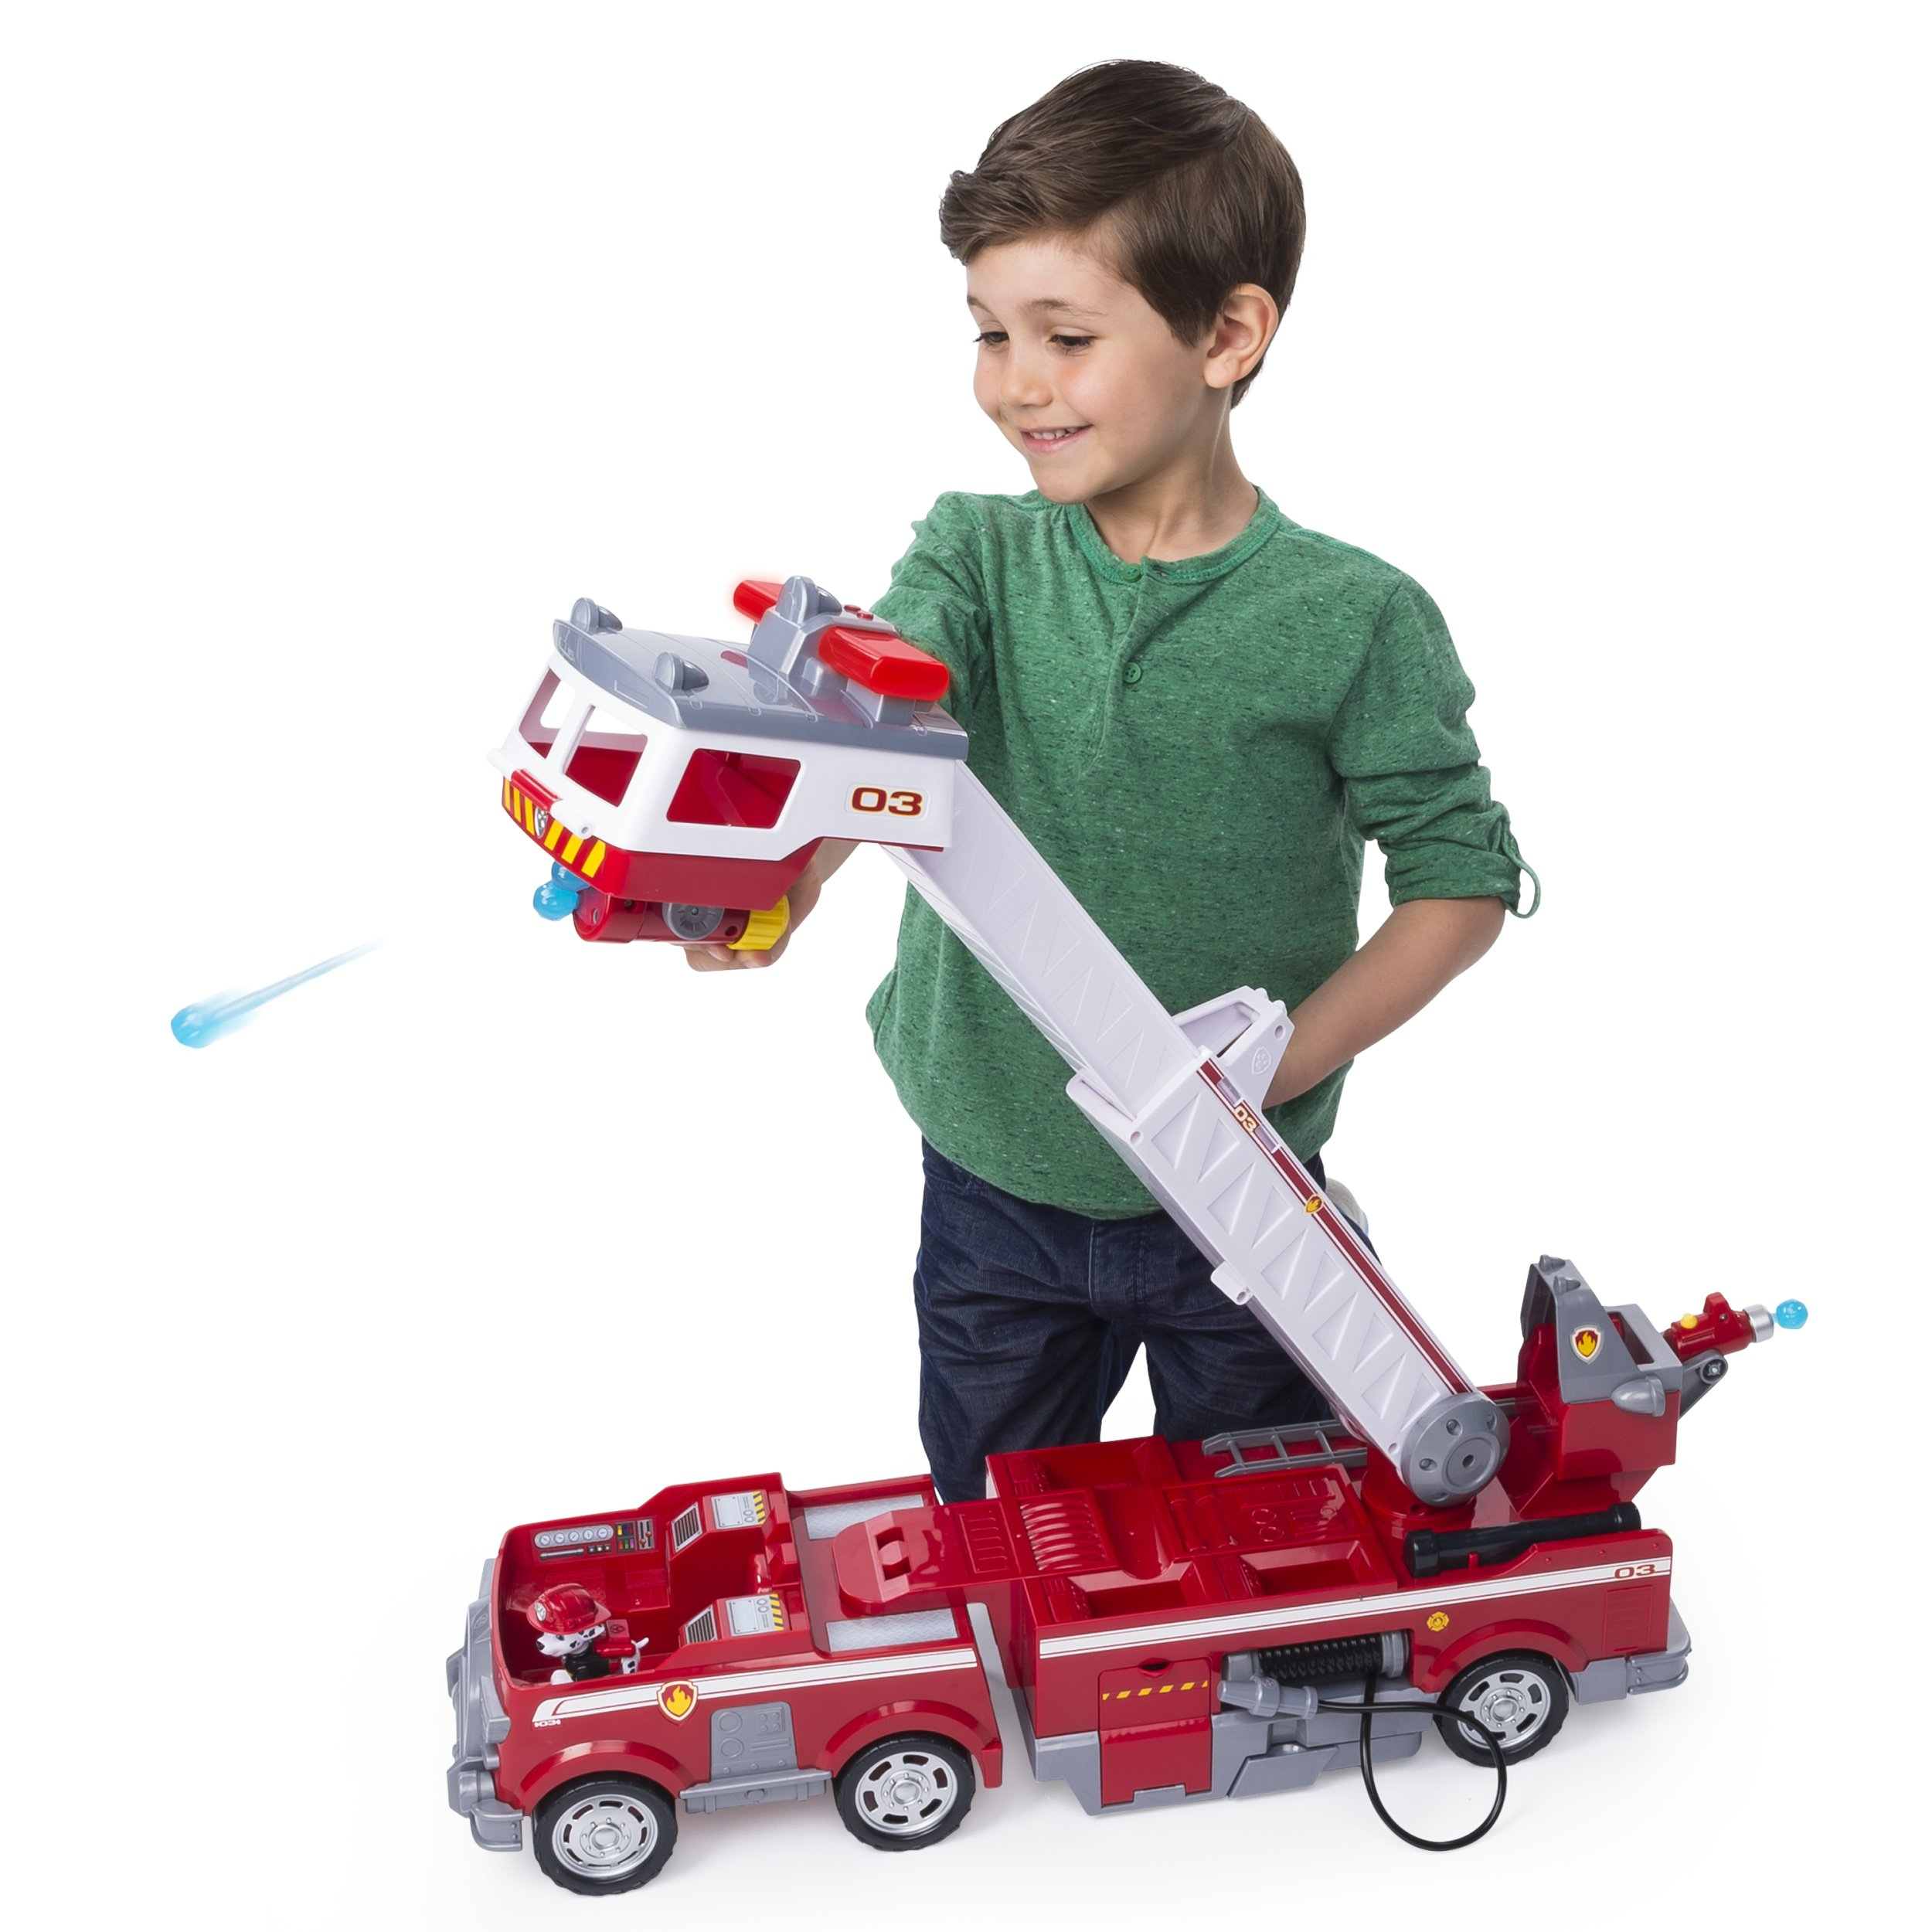 Buy Rescue Fire Truck Now!